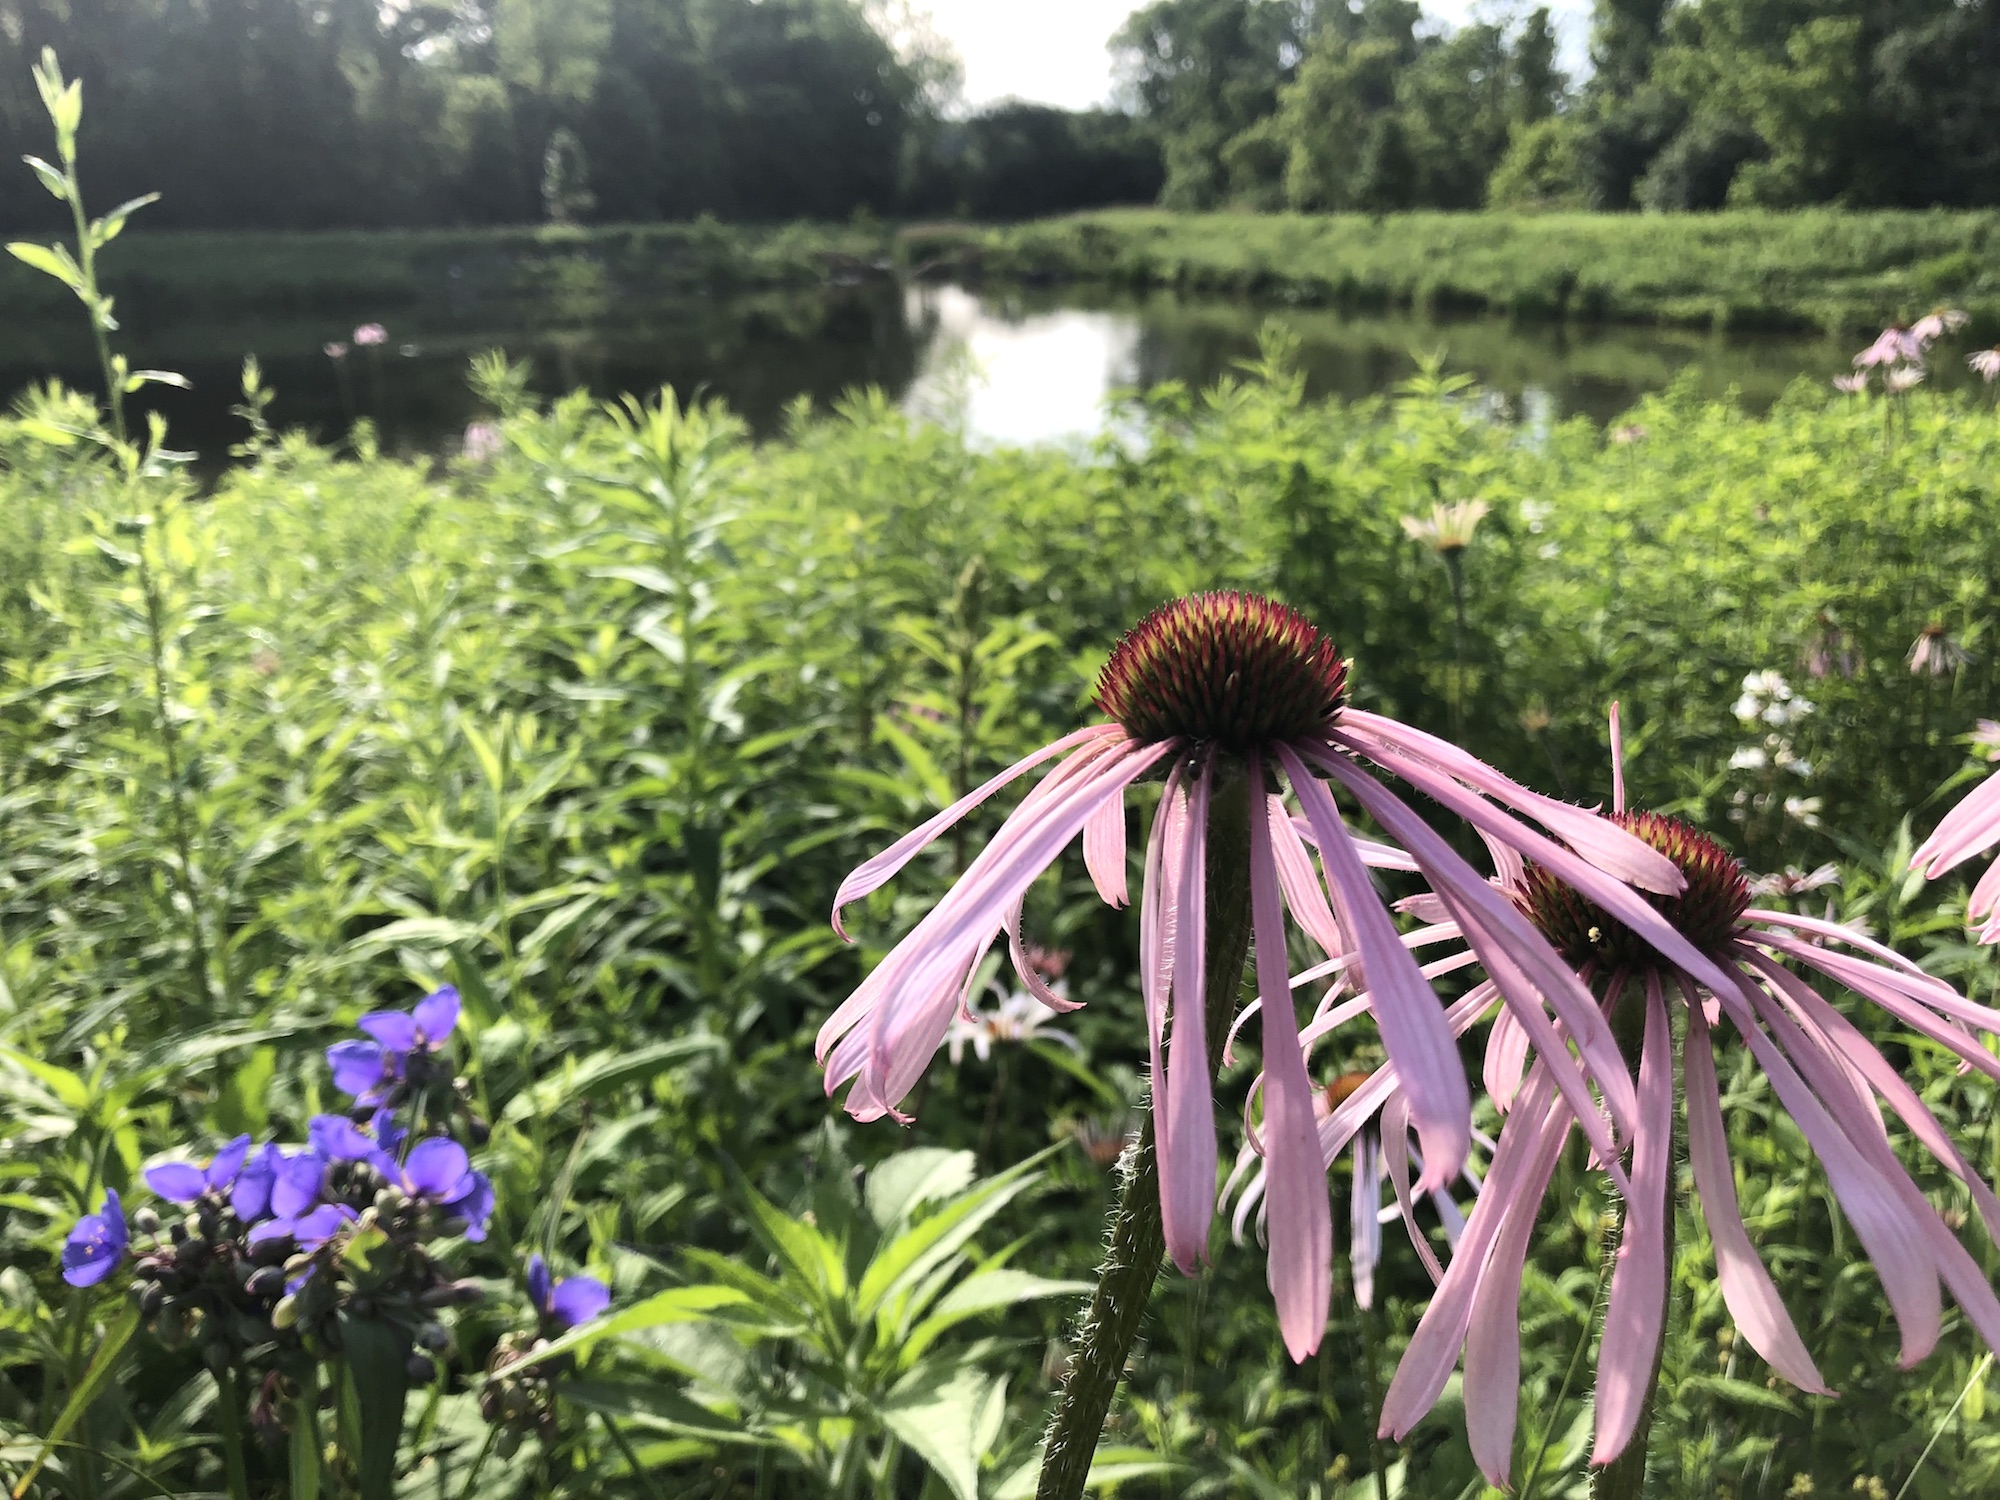 Pale purple coneflower on bank of Retaining Pond on corner of Nakoma Road and Manitou Way on June 26, 2019.